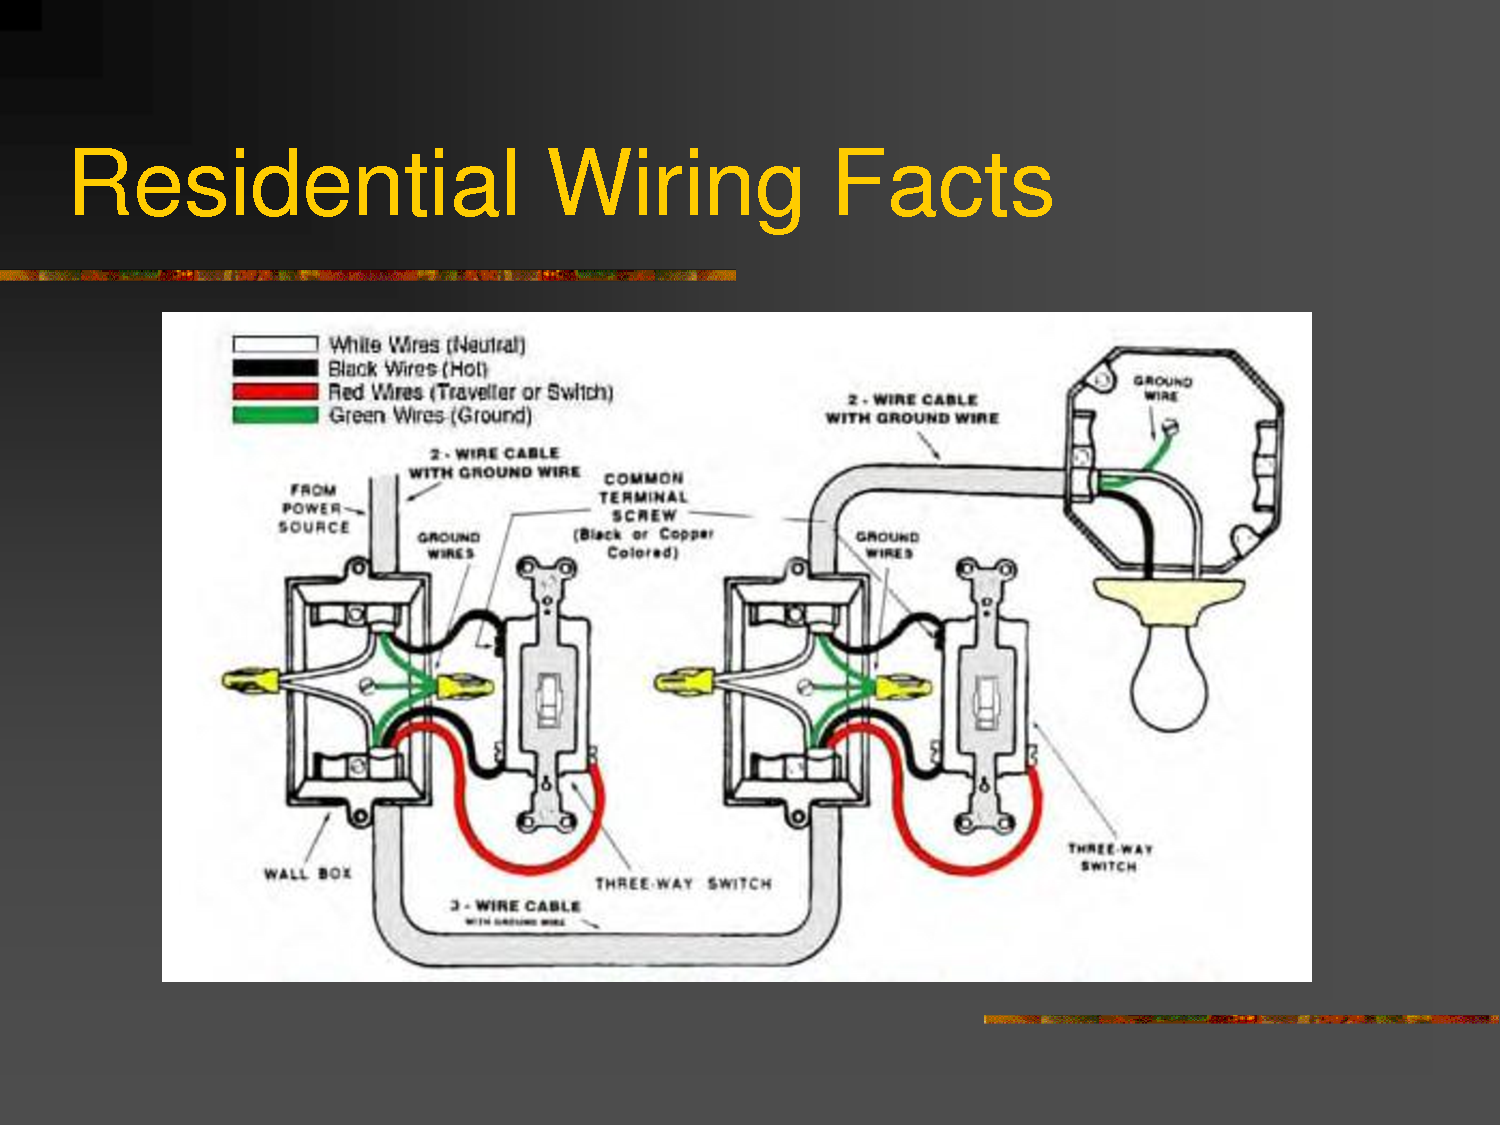 wiring diagram of a residential building pdf wiring library dometic fridge wiring diagrams 4 best images [ 1500 x 1125 Pixel ]